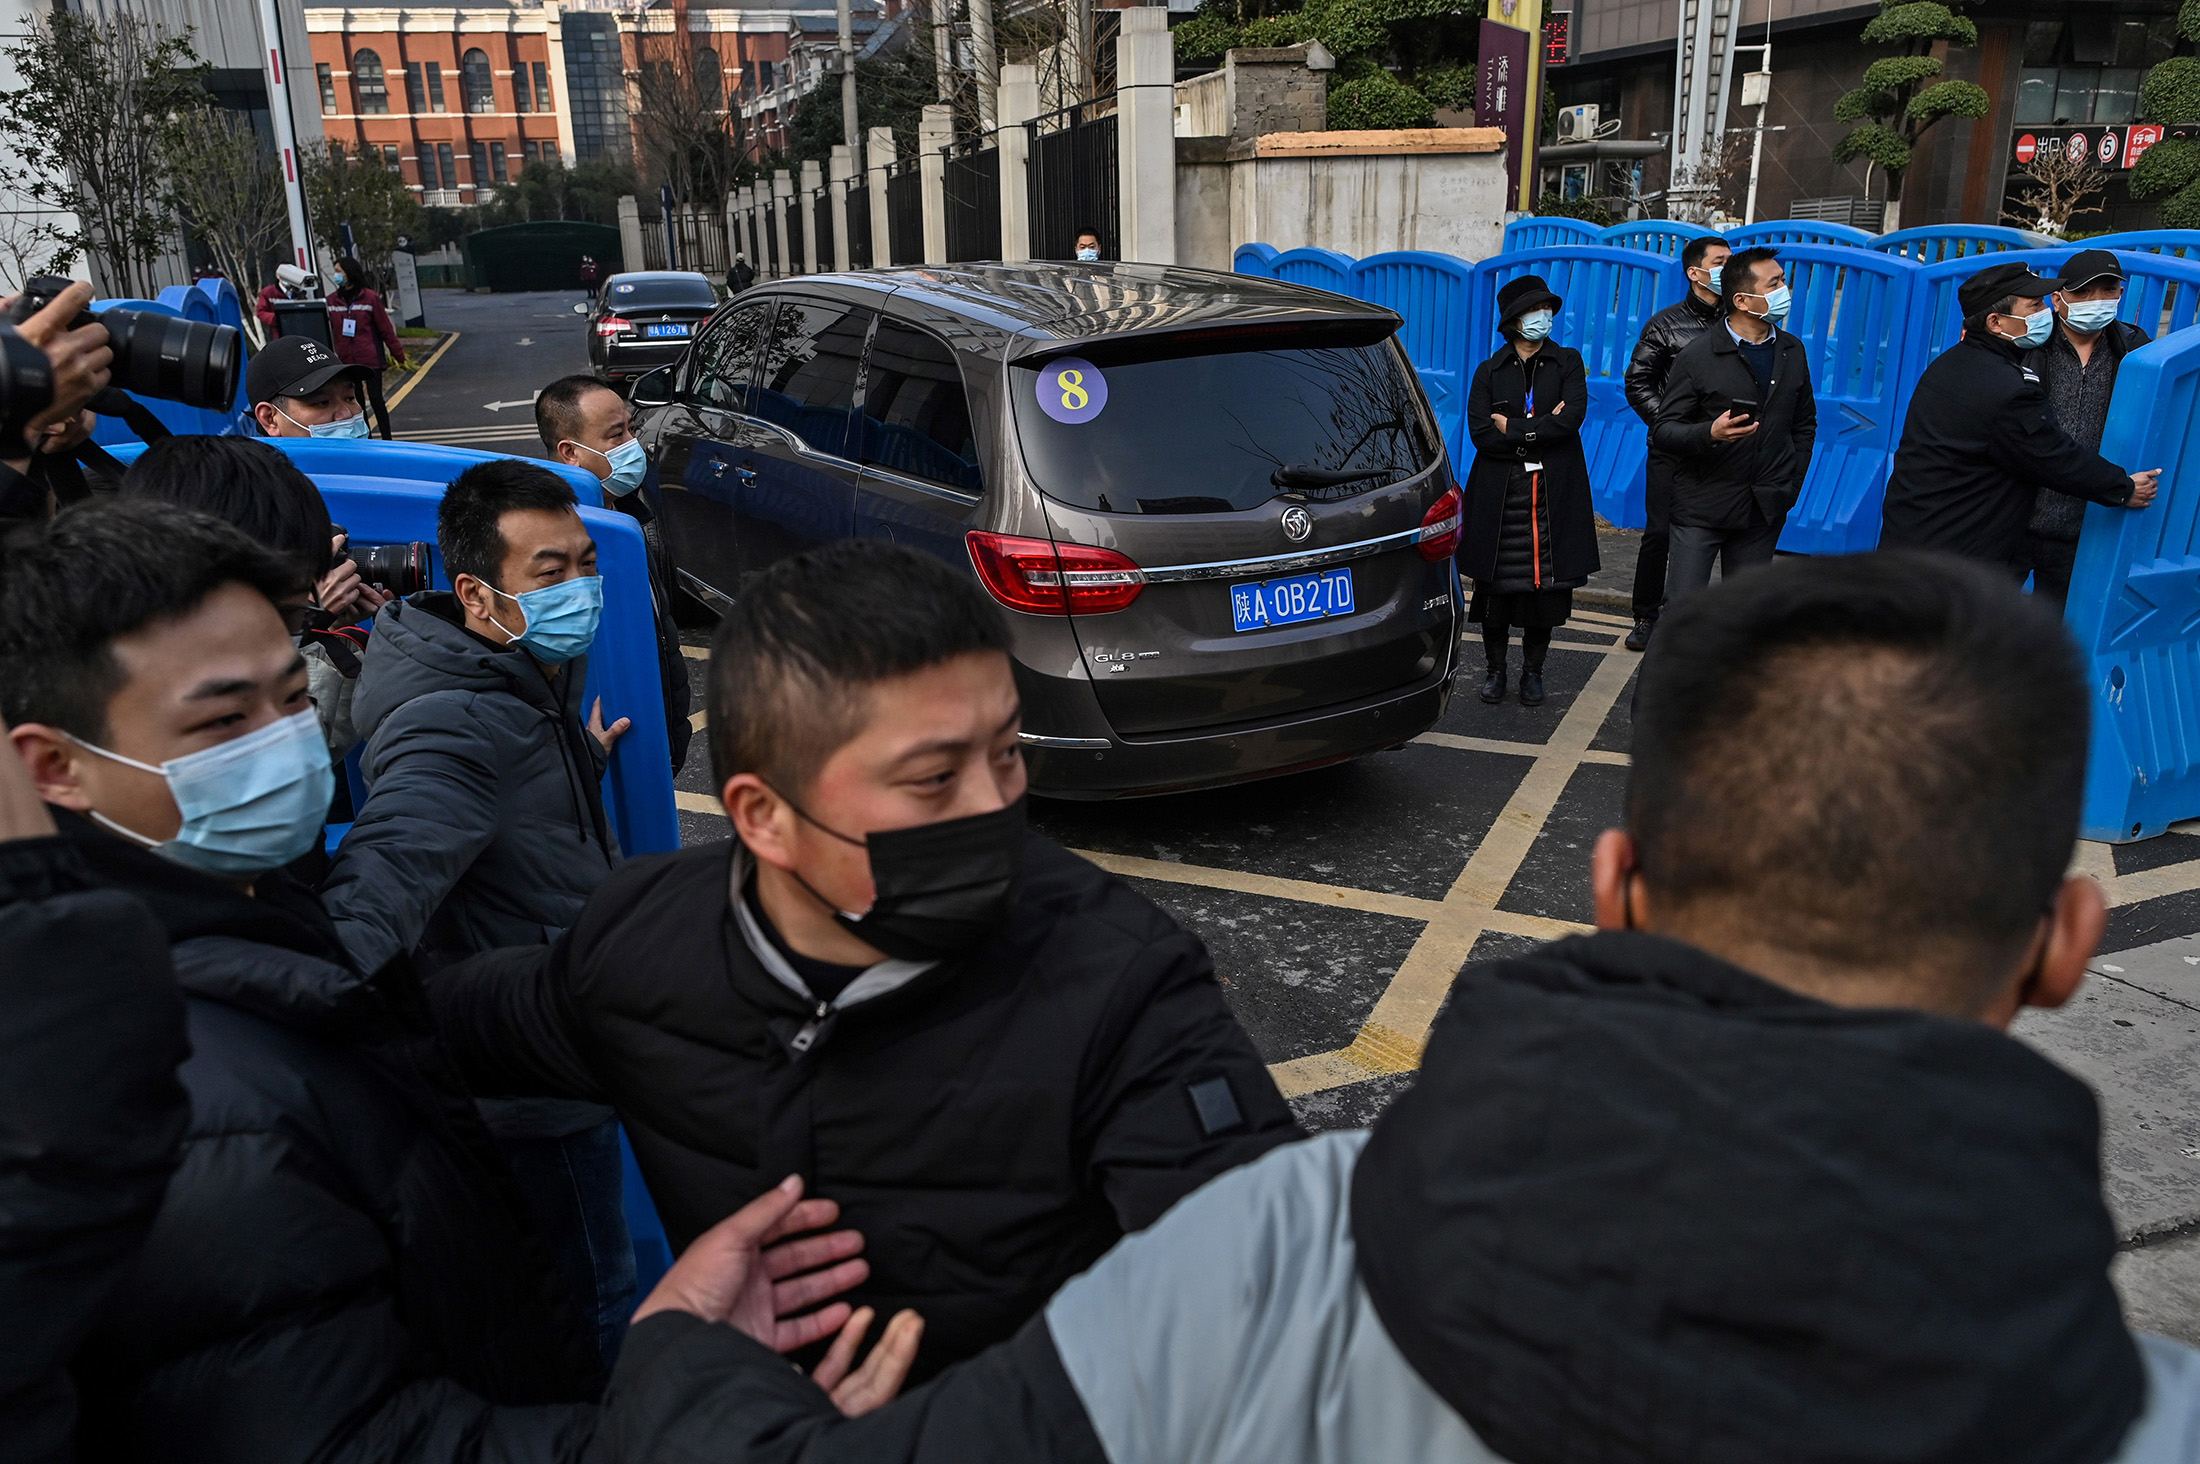 Members of the World Health Organizationteam investigating the origins of the Covid-19 coronavirus arrive at the Wuhan centre for disease control and prevention in Wuhanon Feb. 1.